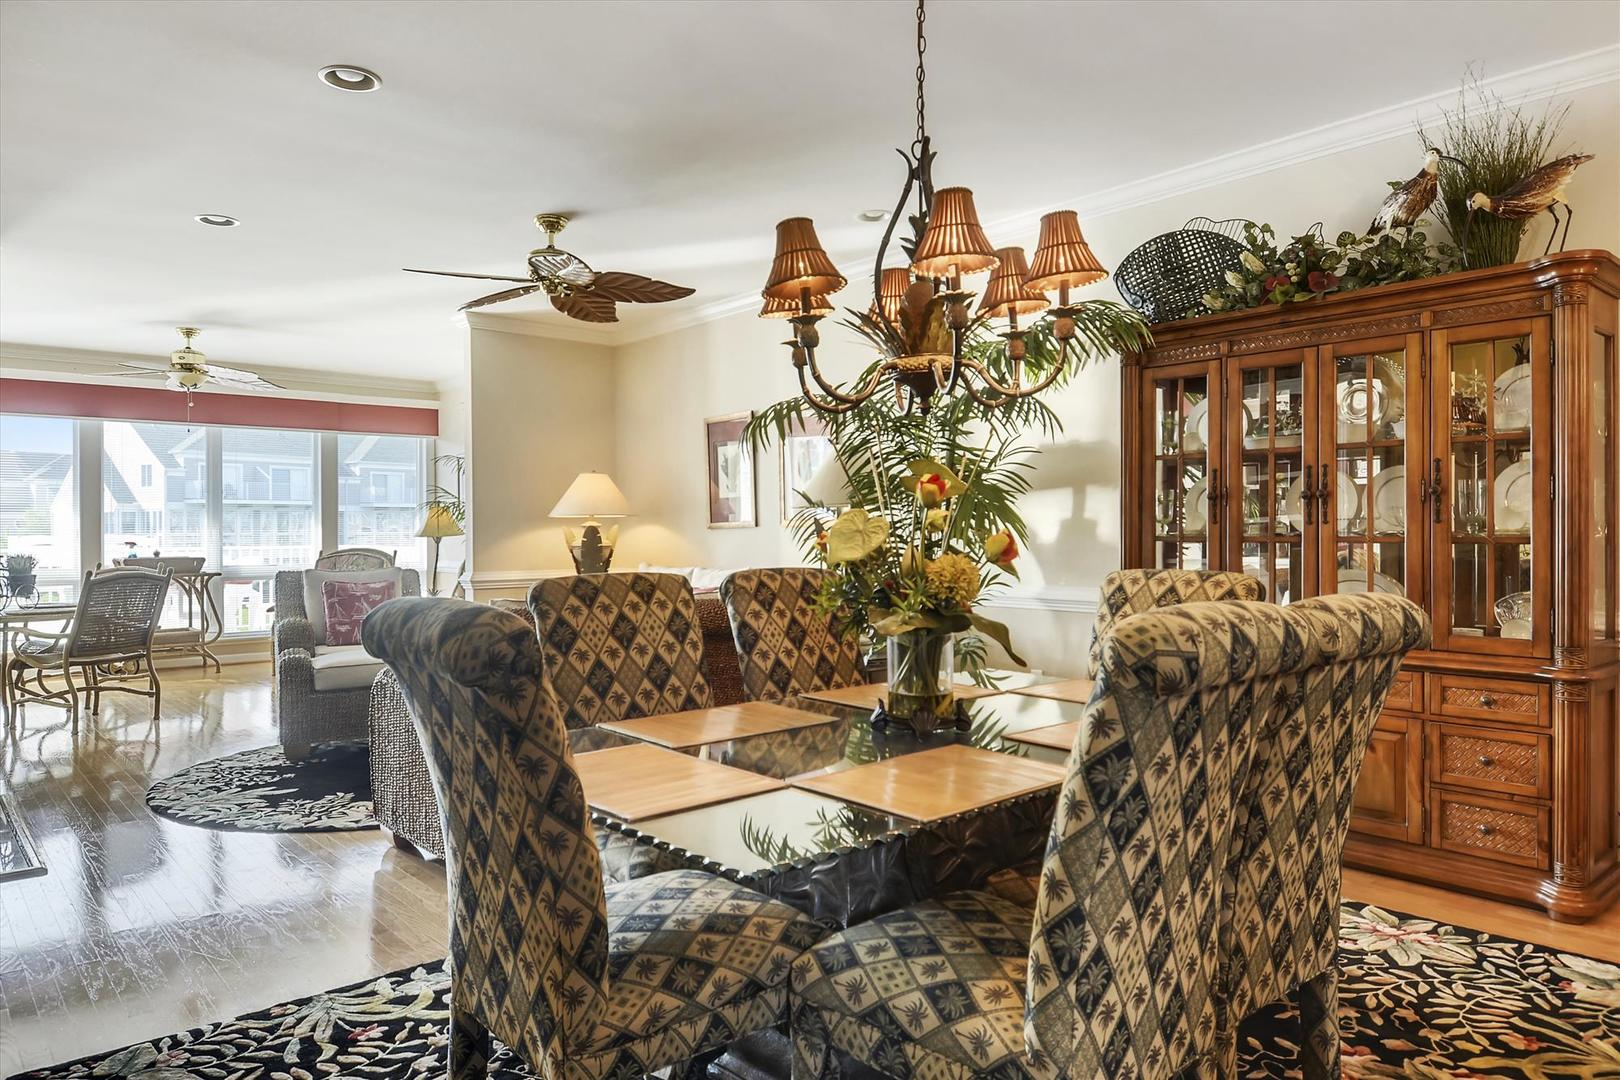 Bayville Shores 1169 - Dining Area